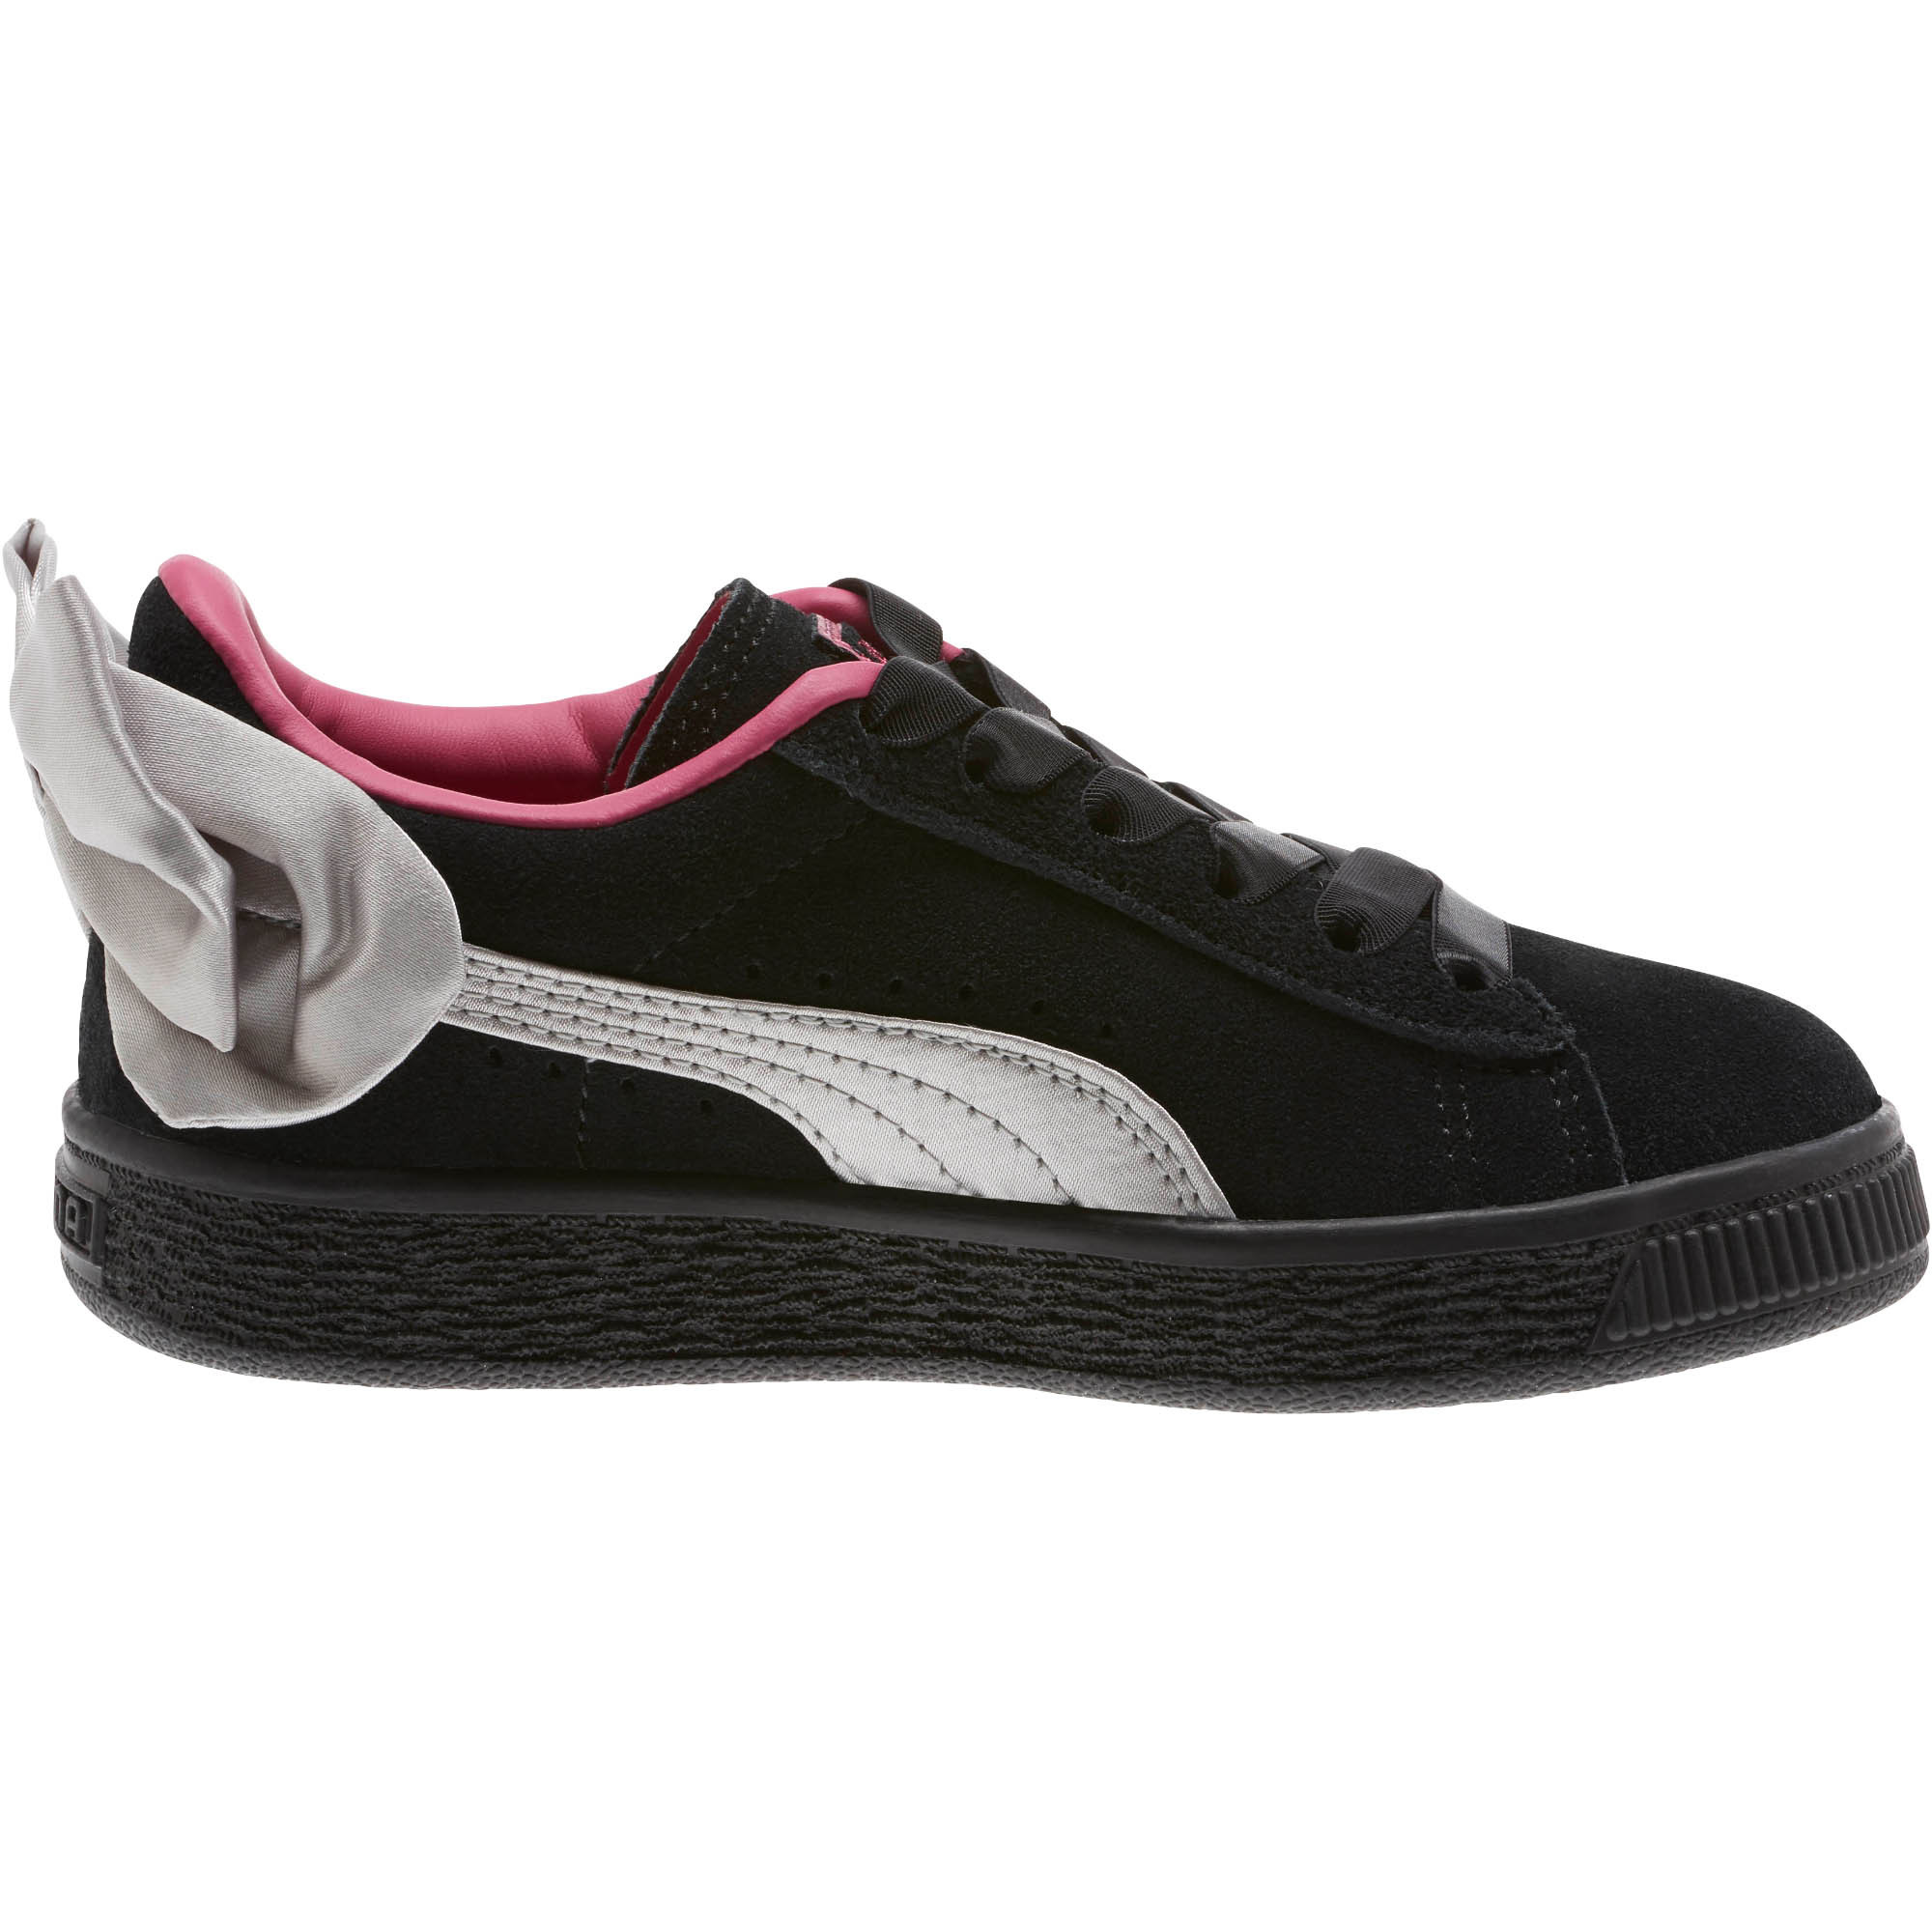 PUMA-Suede-Bow-AC-Little-Kids-039-Shoes-Girls-Shoe-Kids thumbnail 10